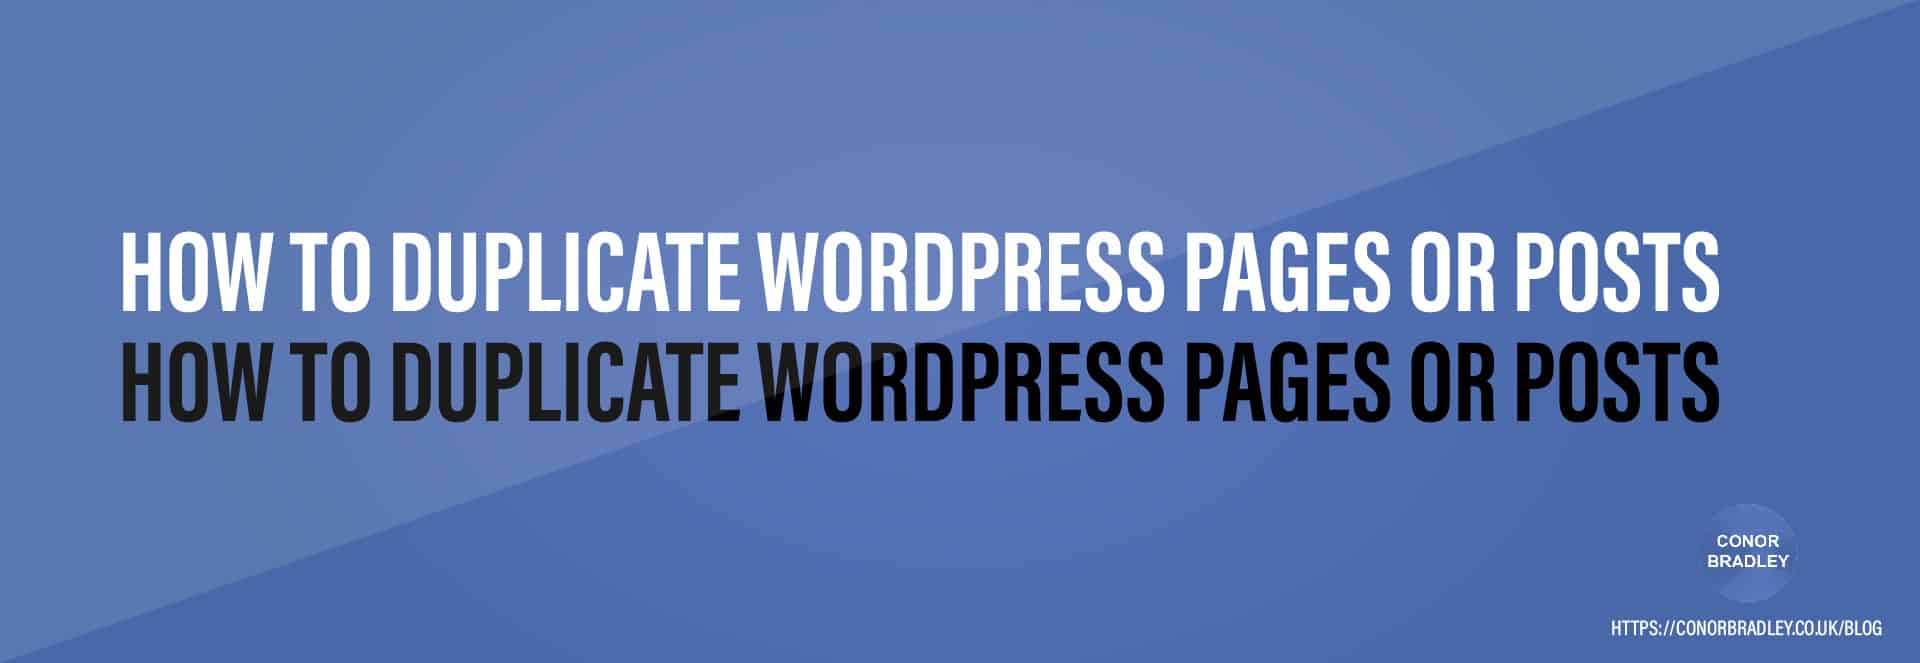 How to Duplicate WordPress Pages or Posts Header 2